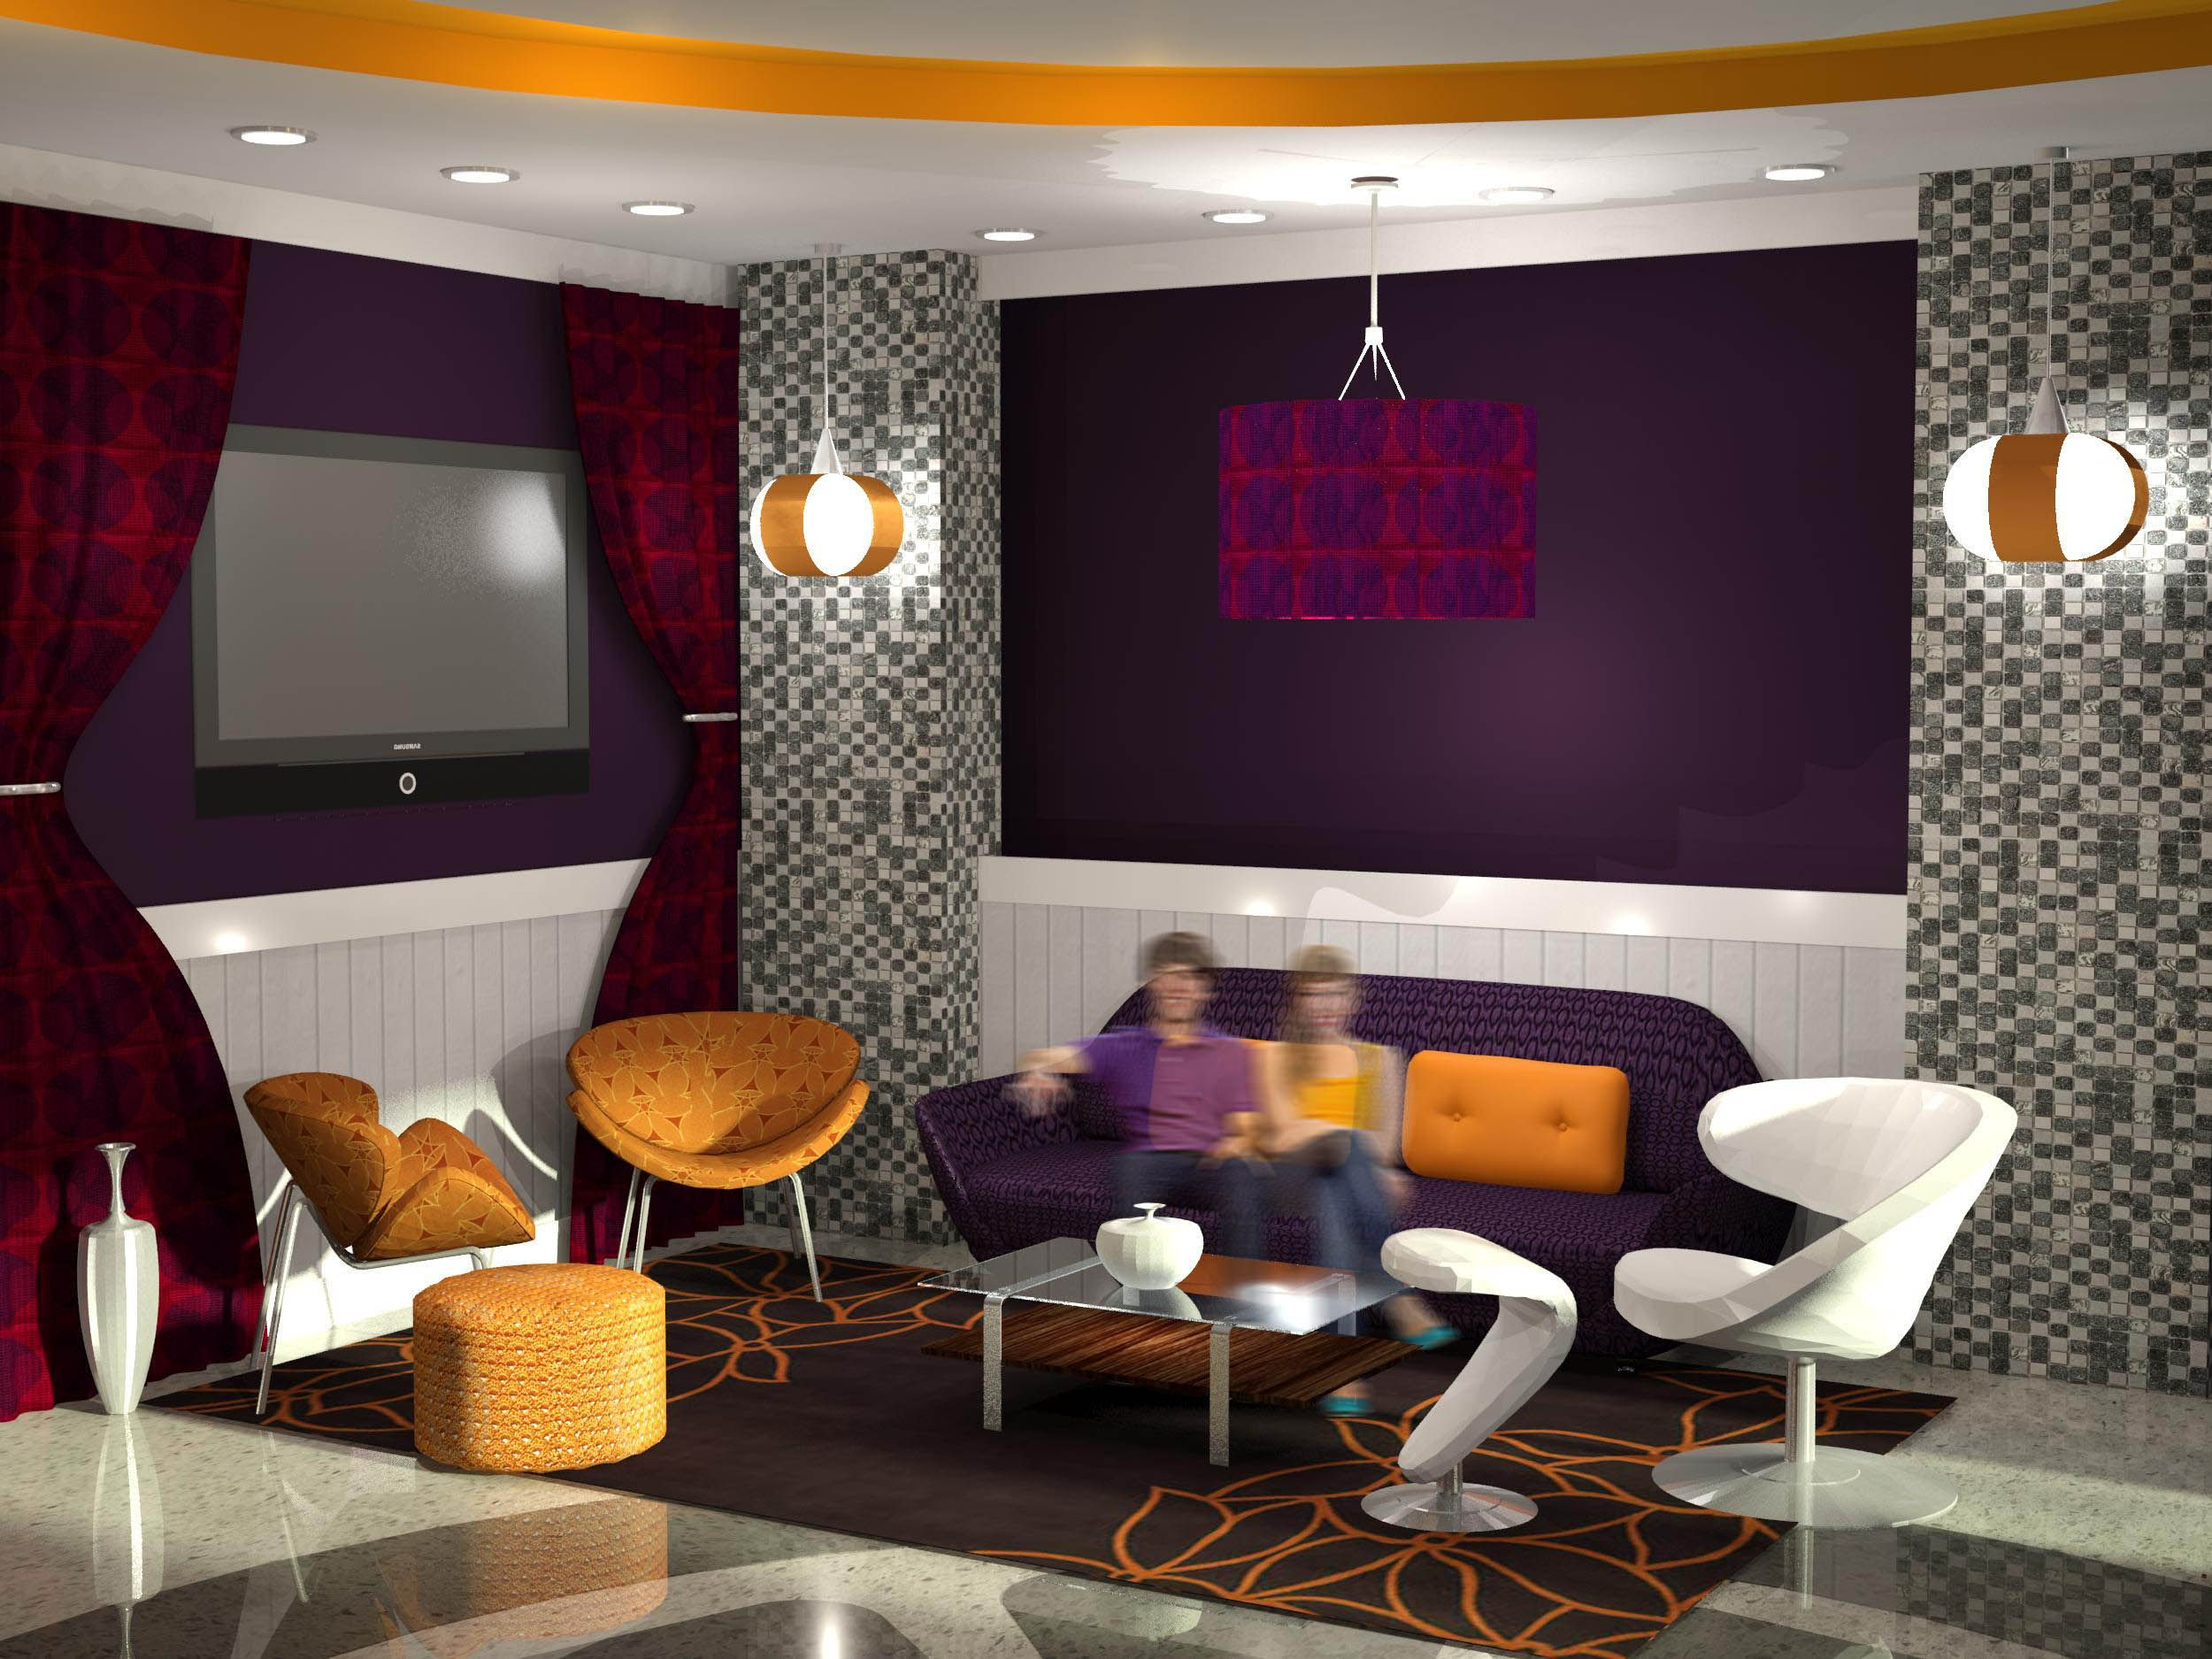 Lounge by ringling college interior design student rianna straw